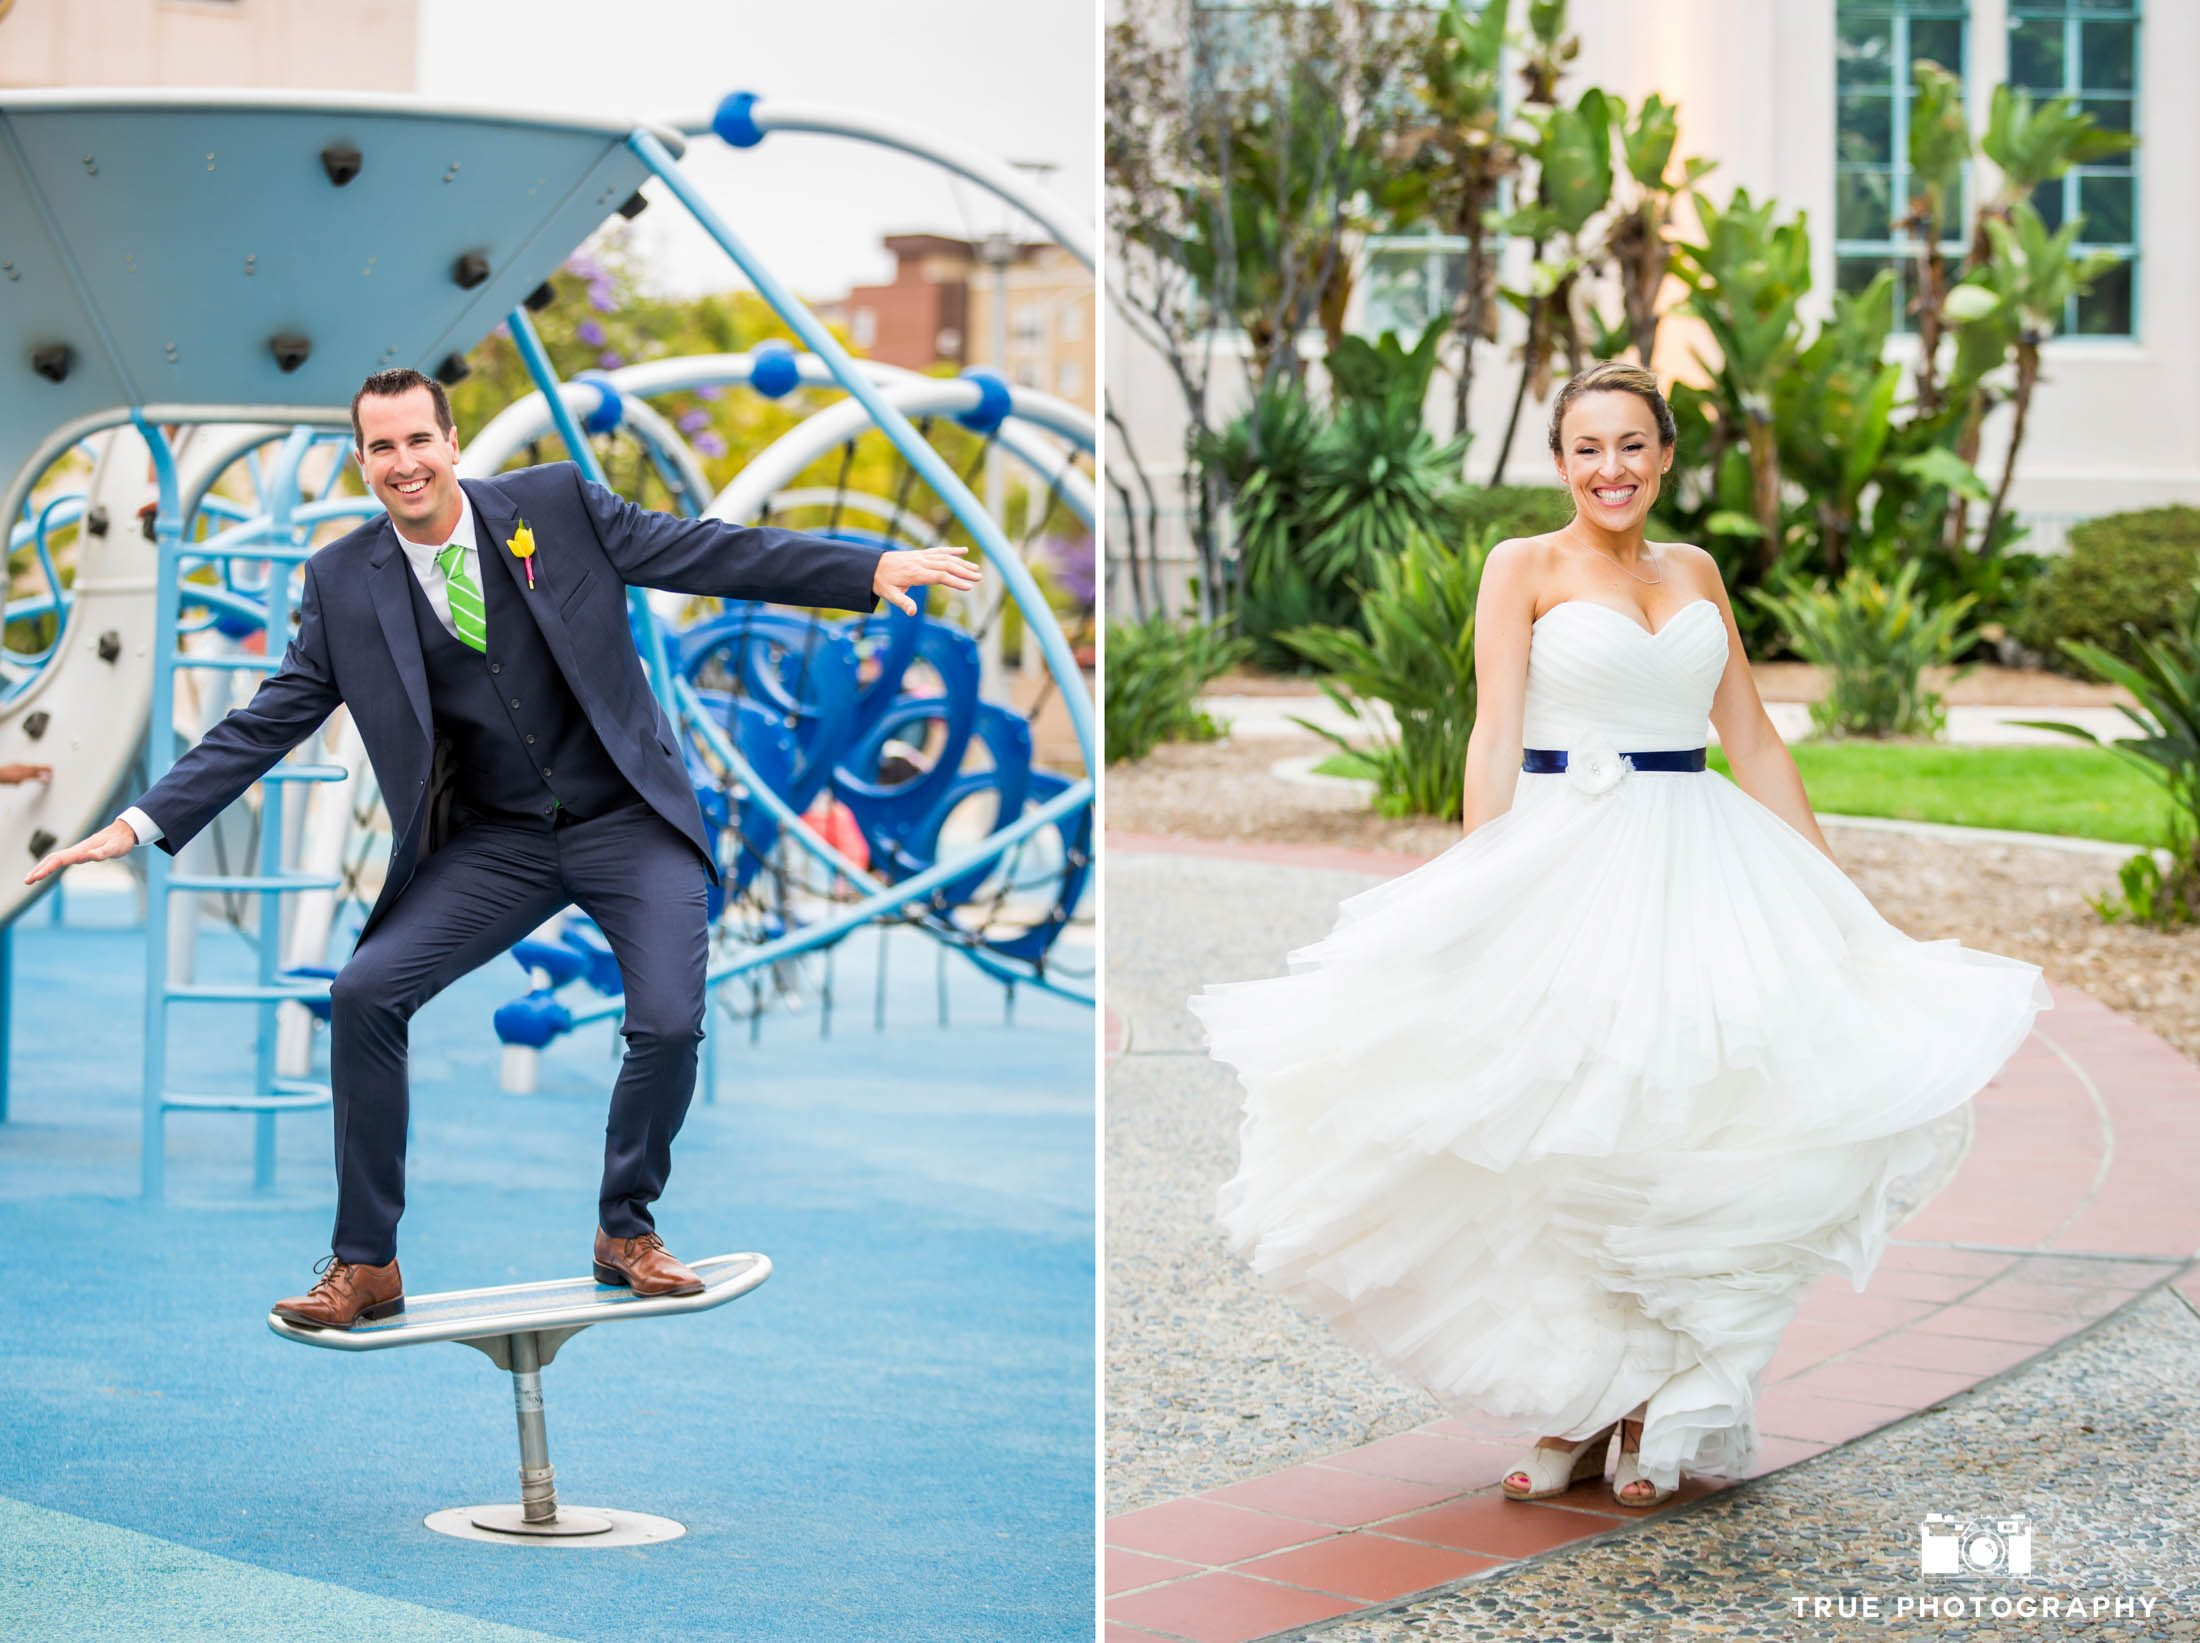 Bride and Groom at Waterfront Park Playground